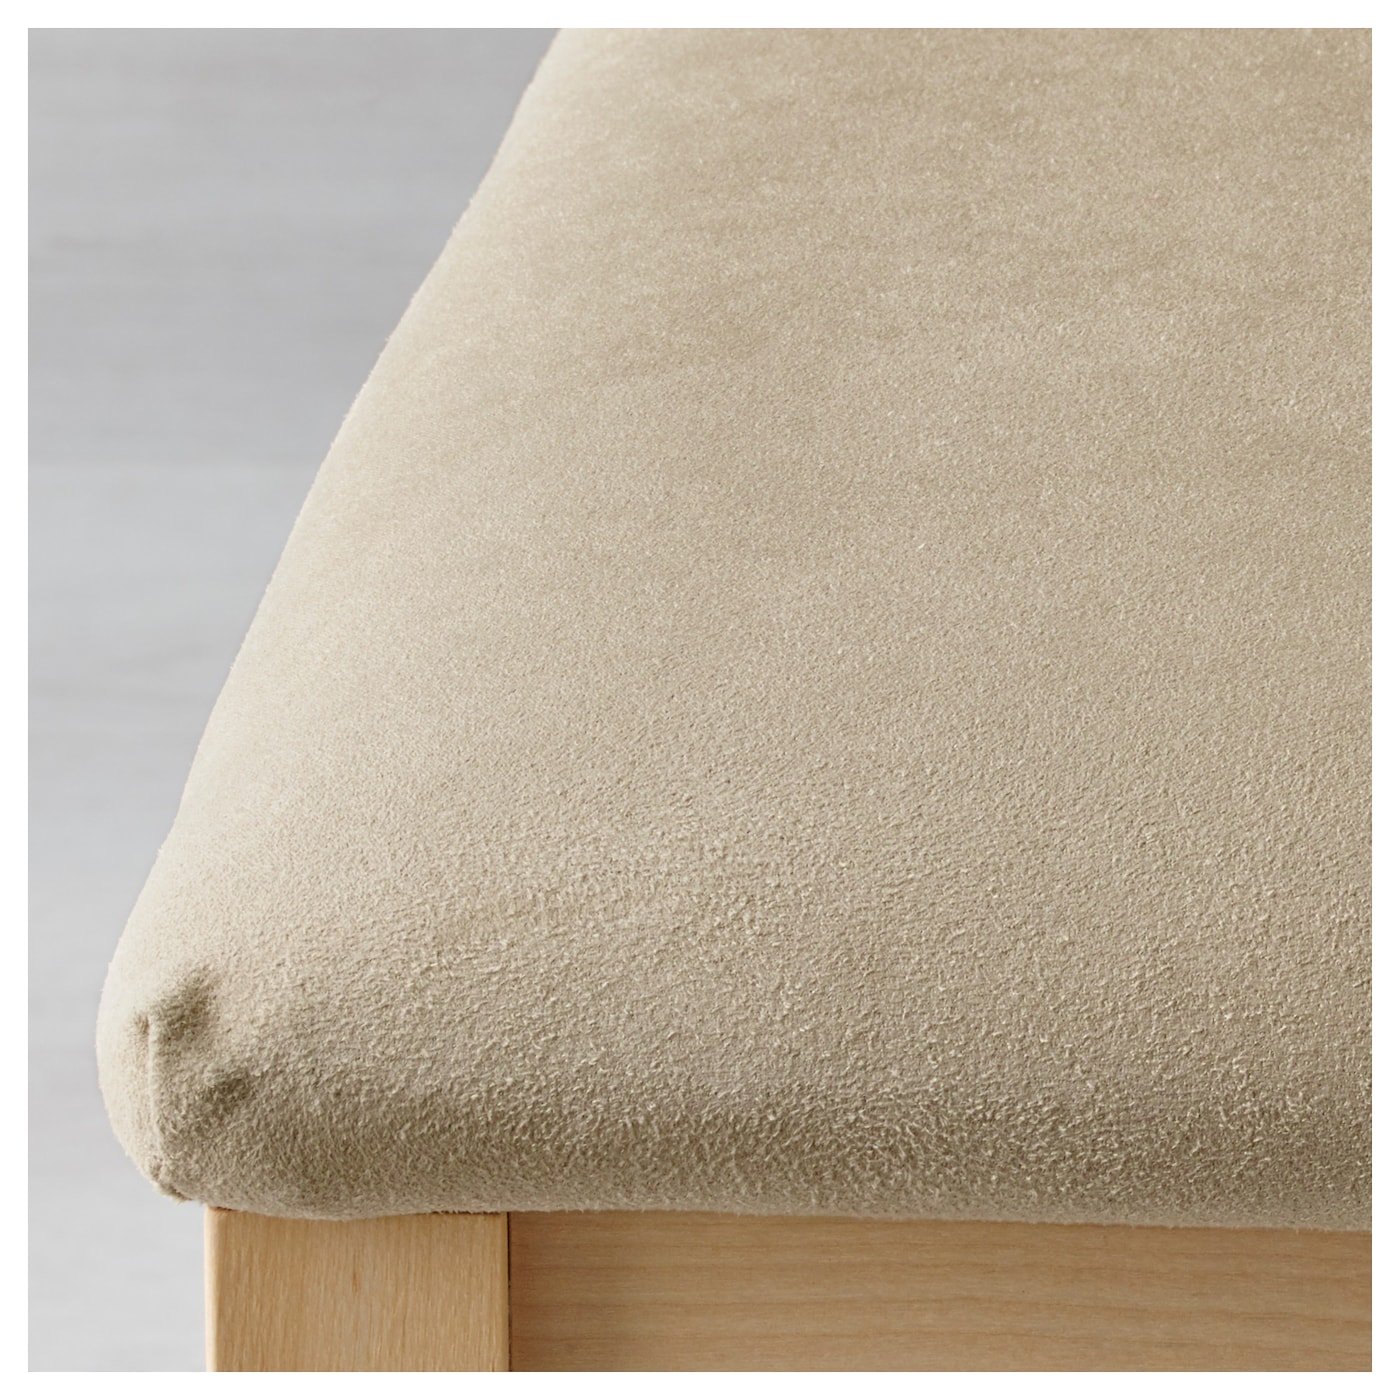 IKEA BÖRJE chair Padded seat for enhanced seating comfort. The cover can be machine washed.